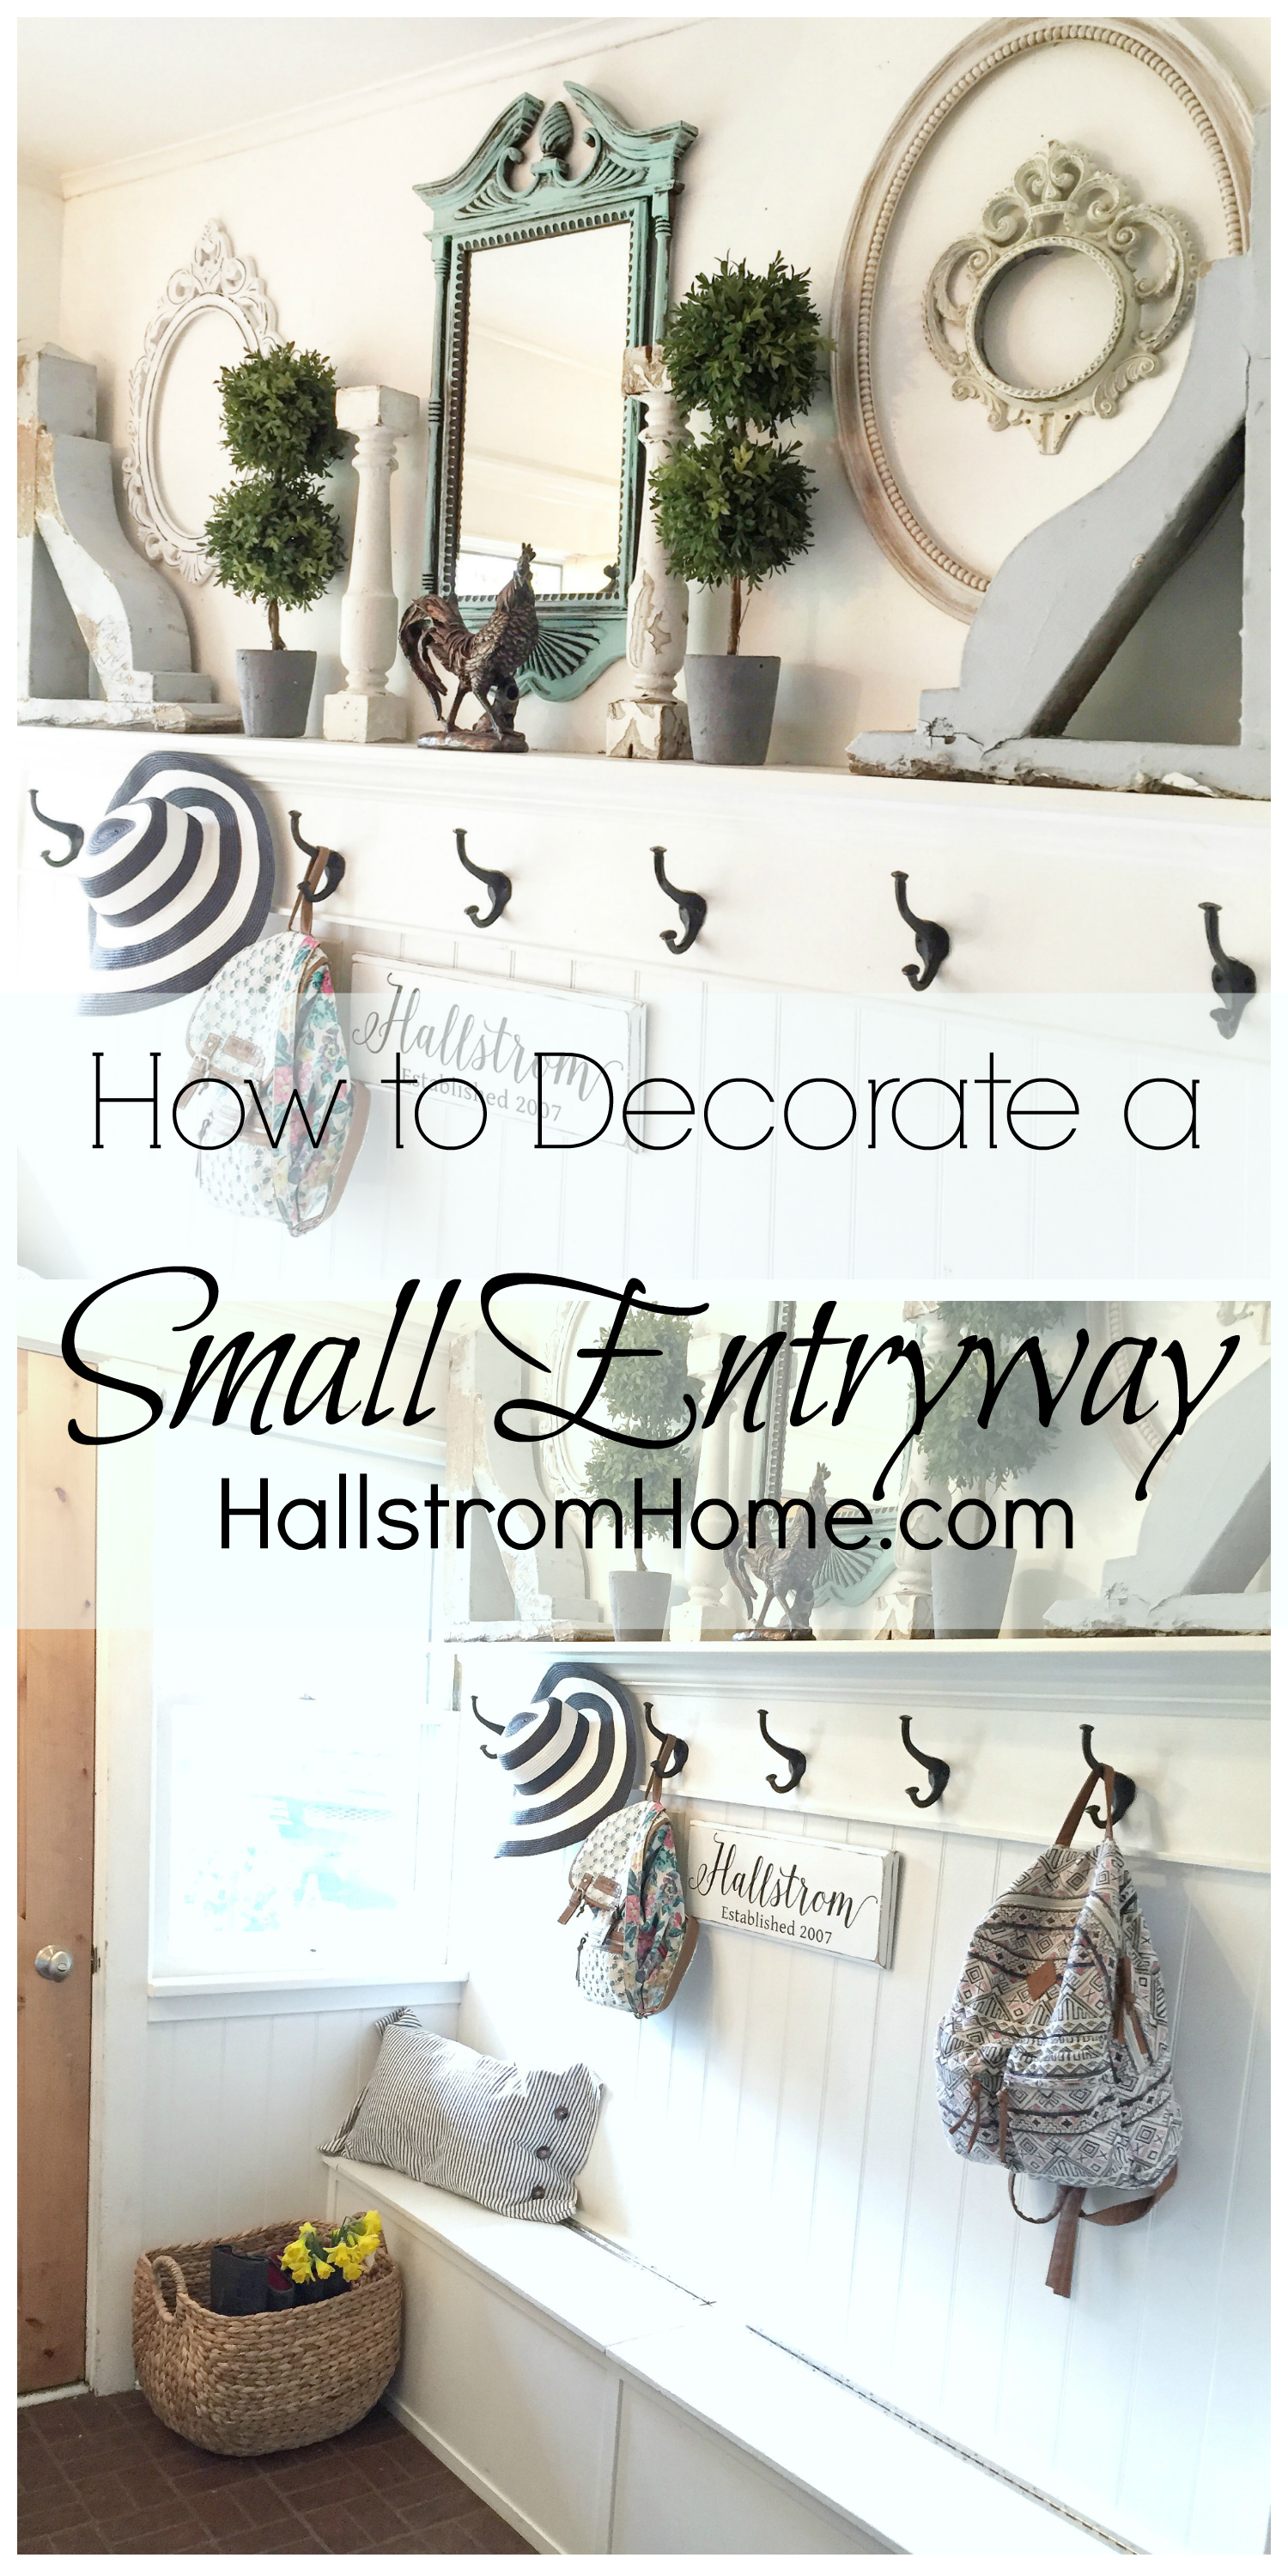 How to Decorate a Small Entryway by Hallstrom Home